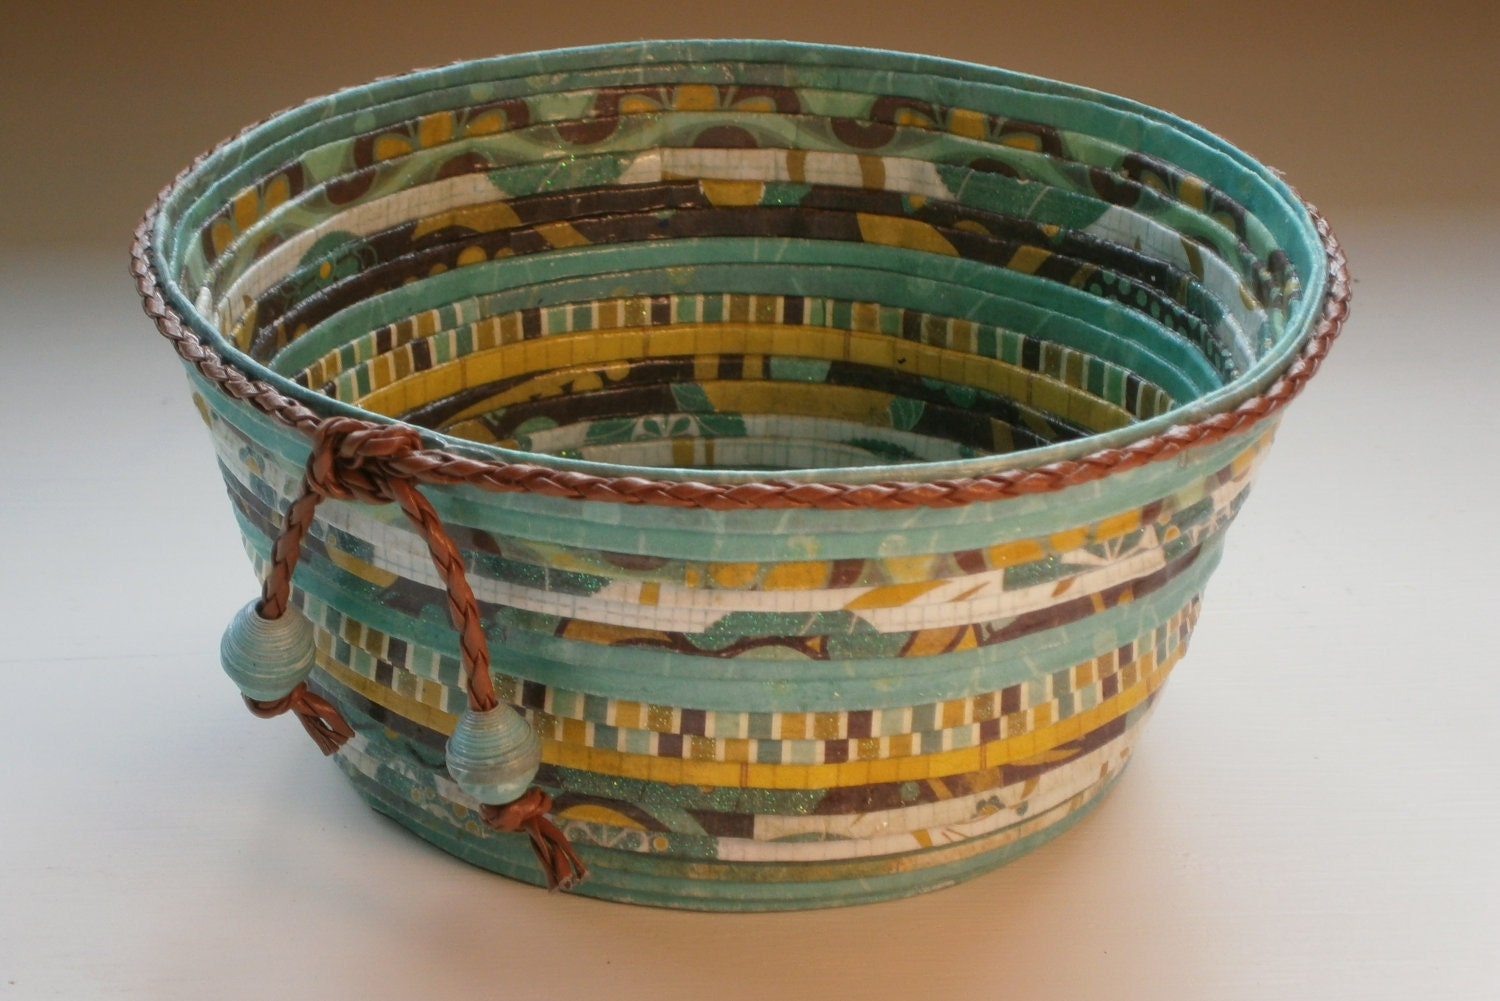 Handmade Basket Paper : Handmade paper basket bowl turquoise brown and by